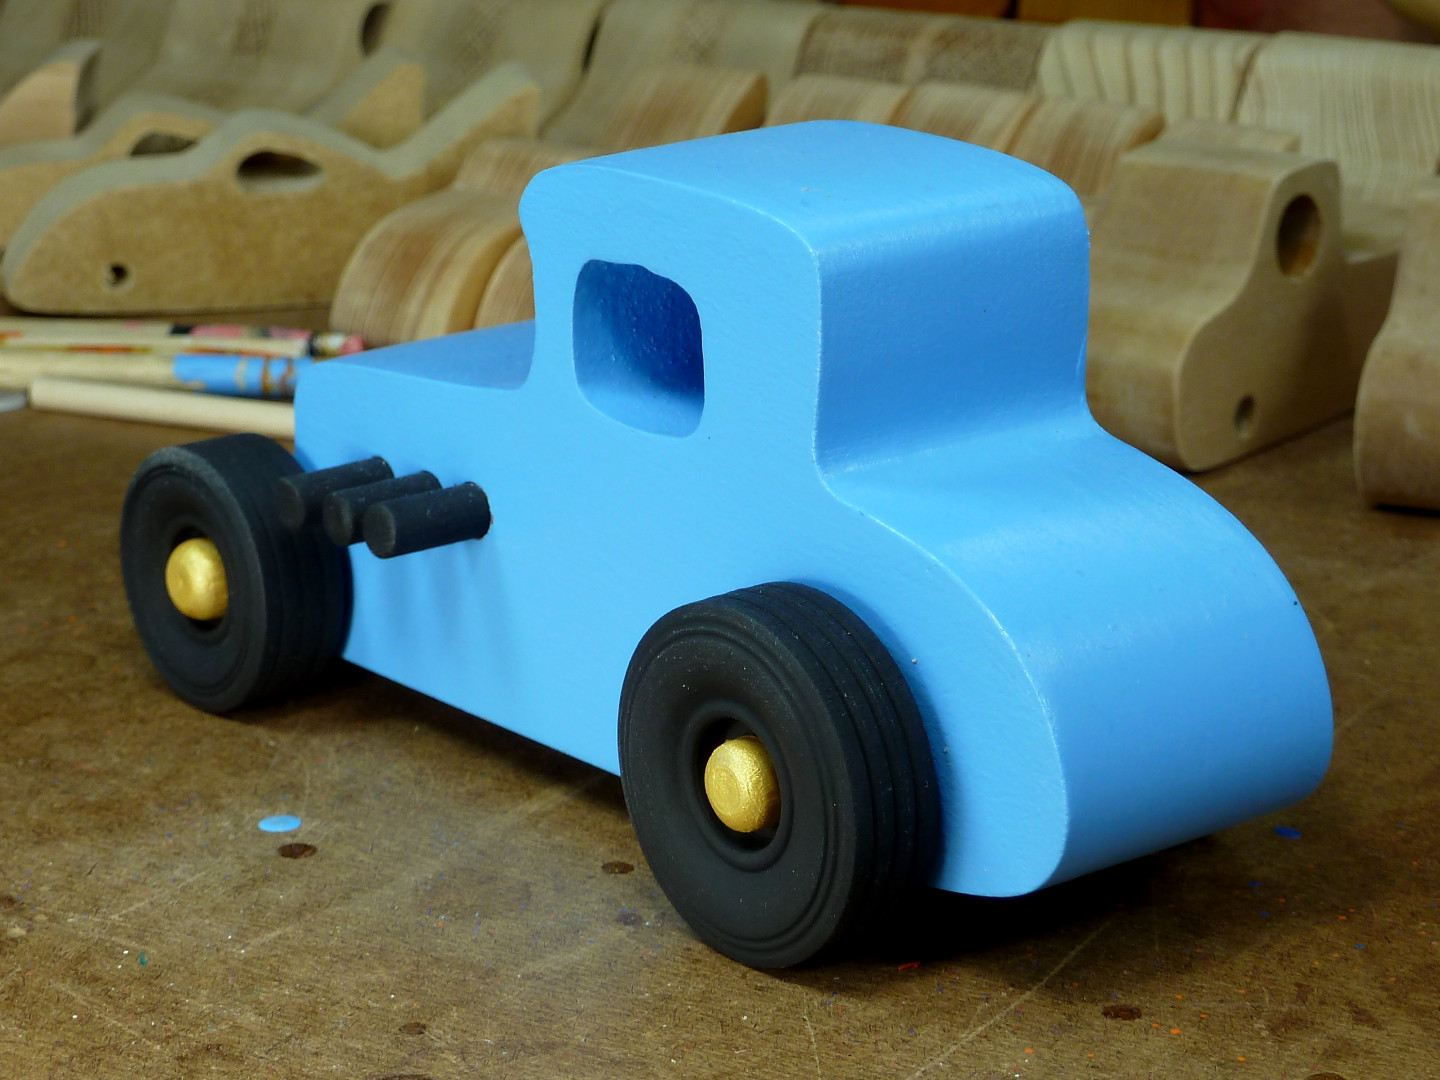 20170522-192744 Wooden Toy Car - Hot Rod Freaky Ford - 27 T Coupe - MDF - Blue - Black - Gold 05.jpg